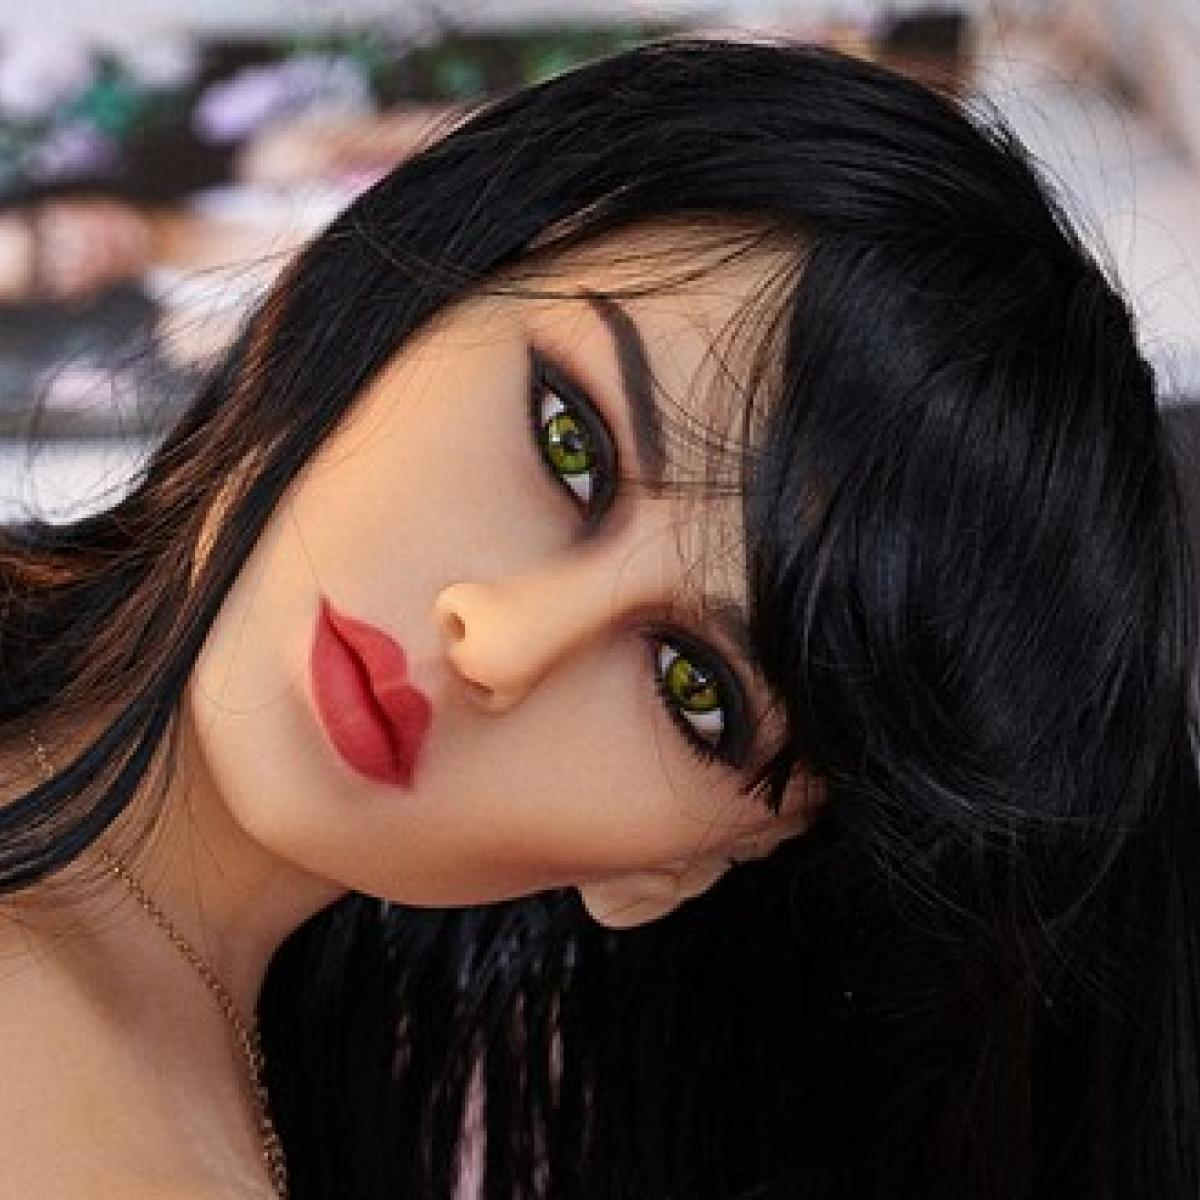 Neodoll Green Eyes - Sex Doll Accessories